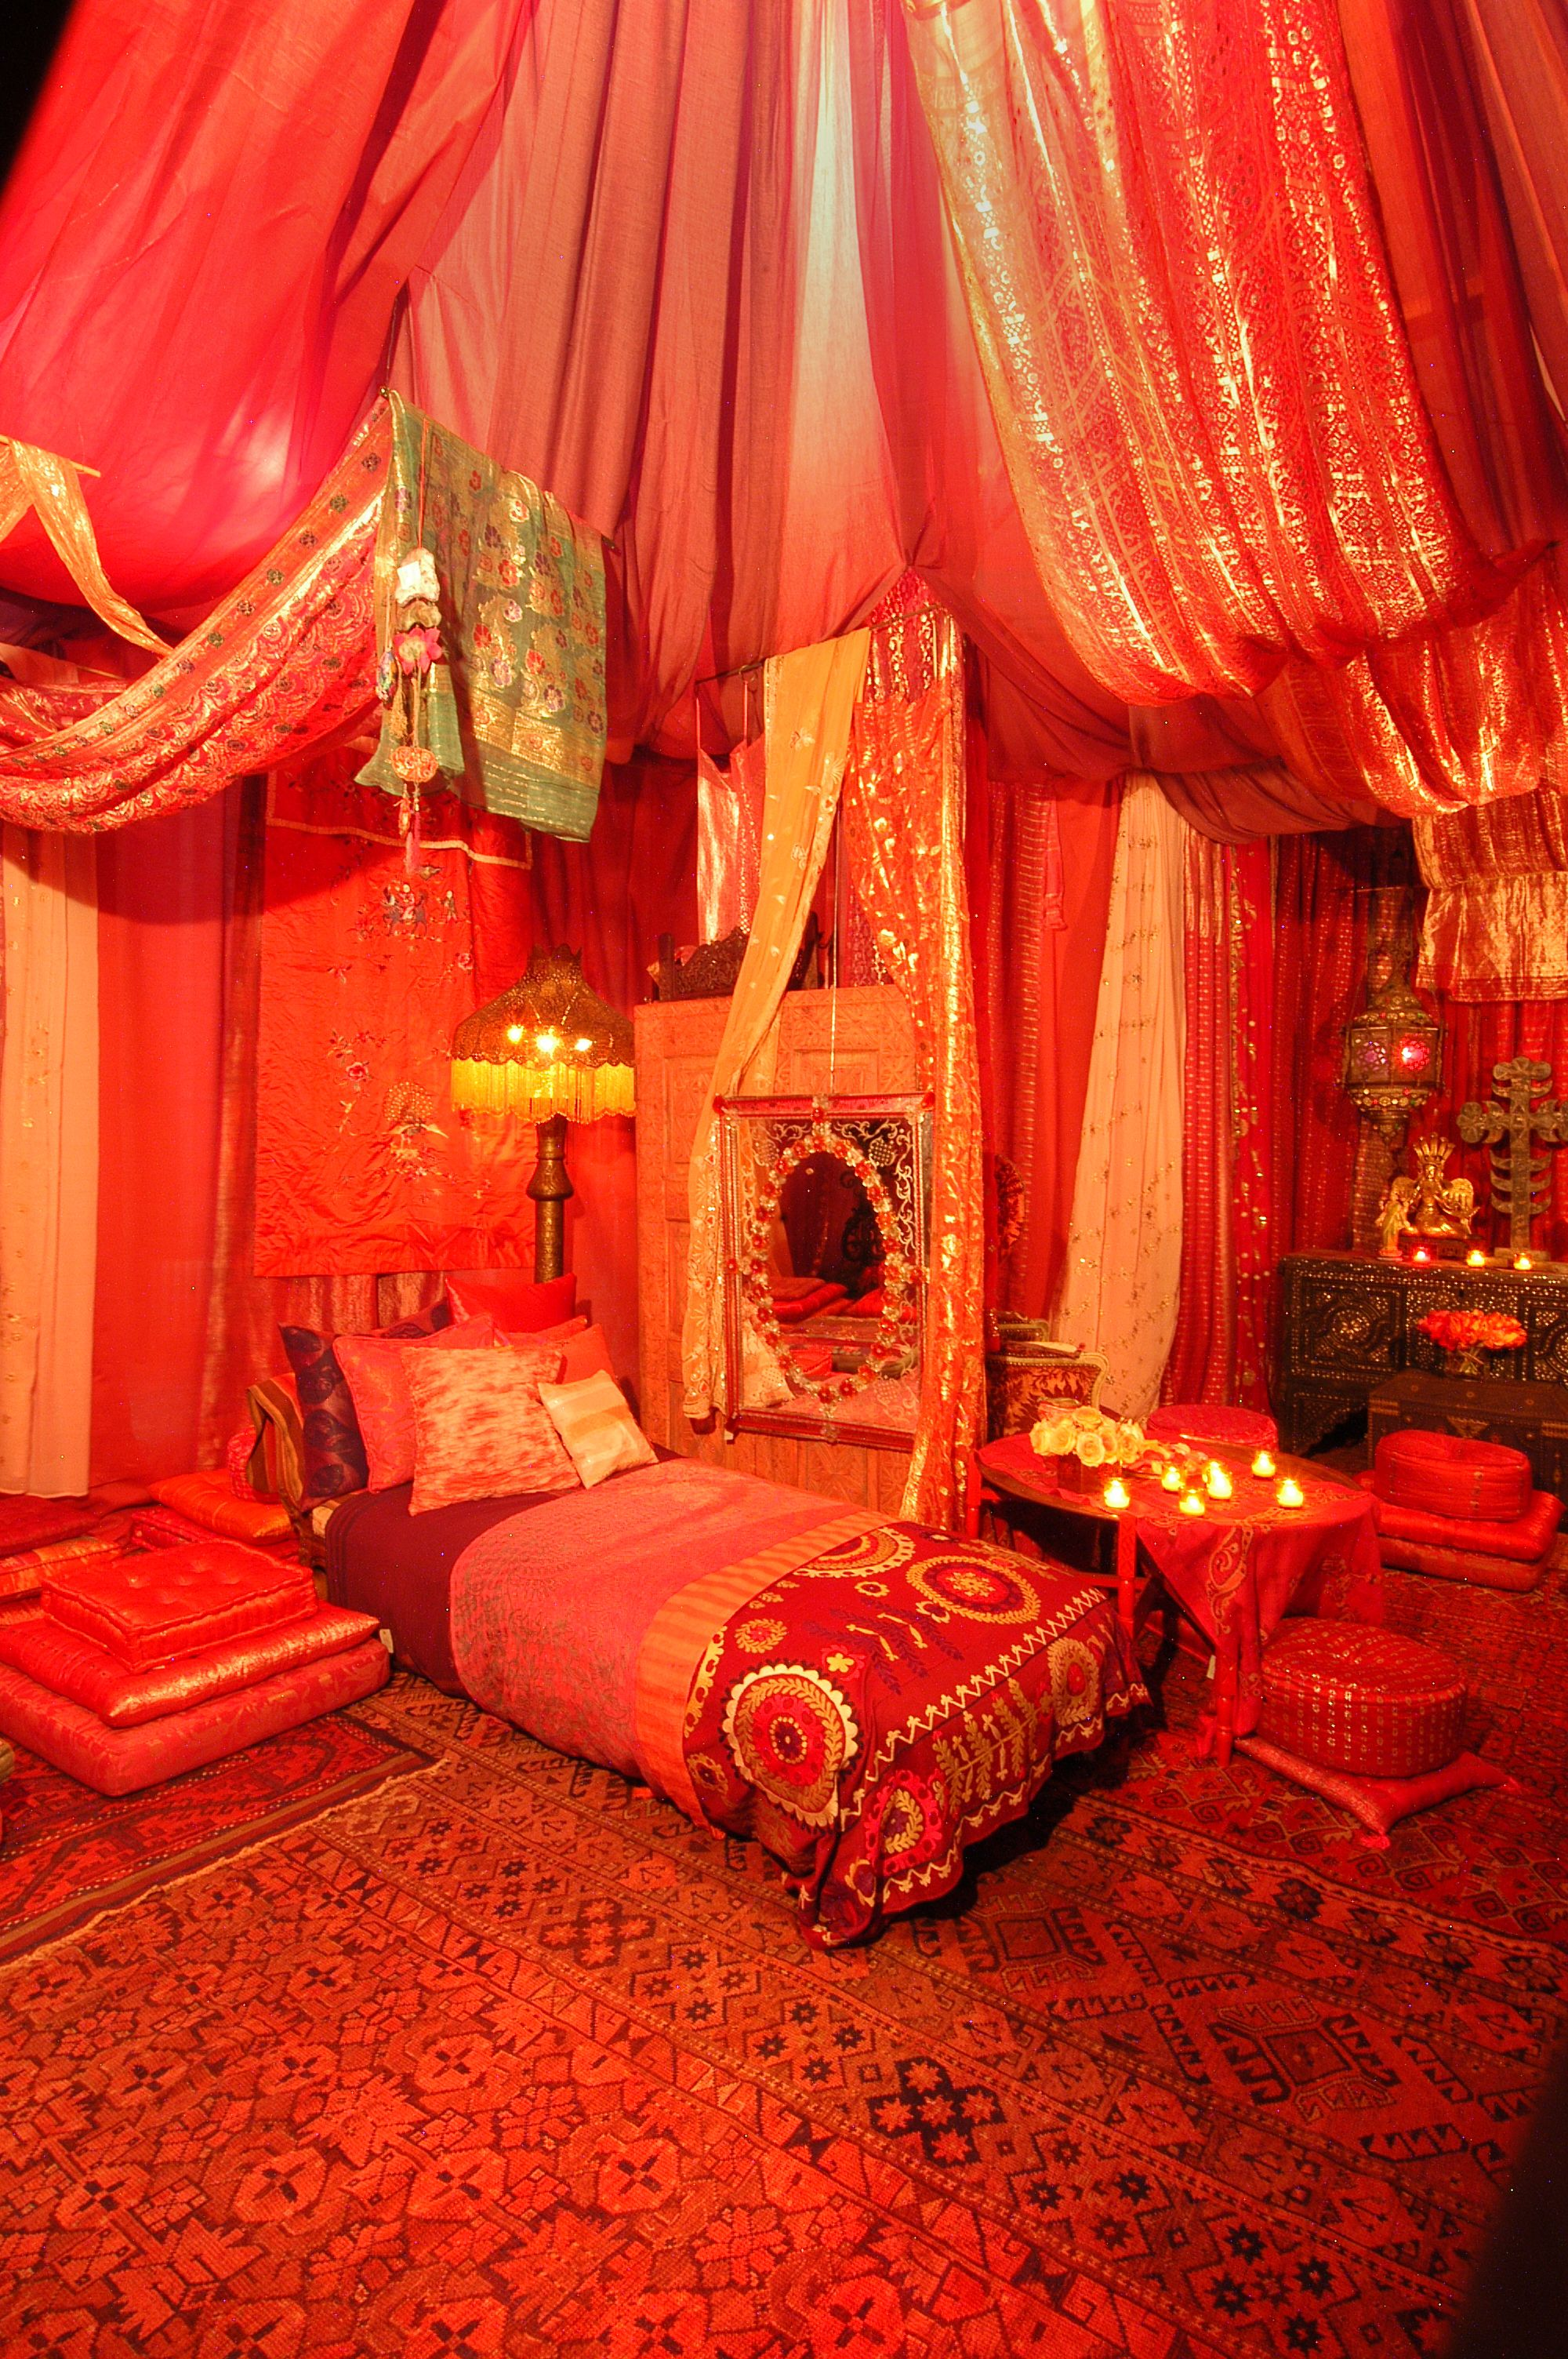 ABC Carpet u0026 Home Store Red Tent ... & ABC Carpet u0026 Home Store Red Tent 2005 | Red Tent Movie ...